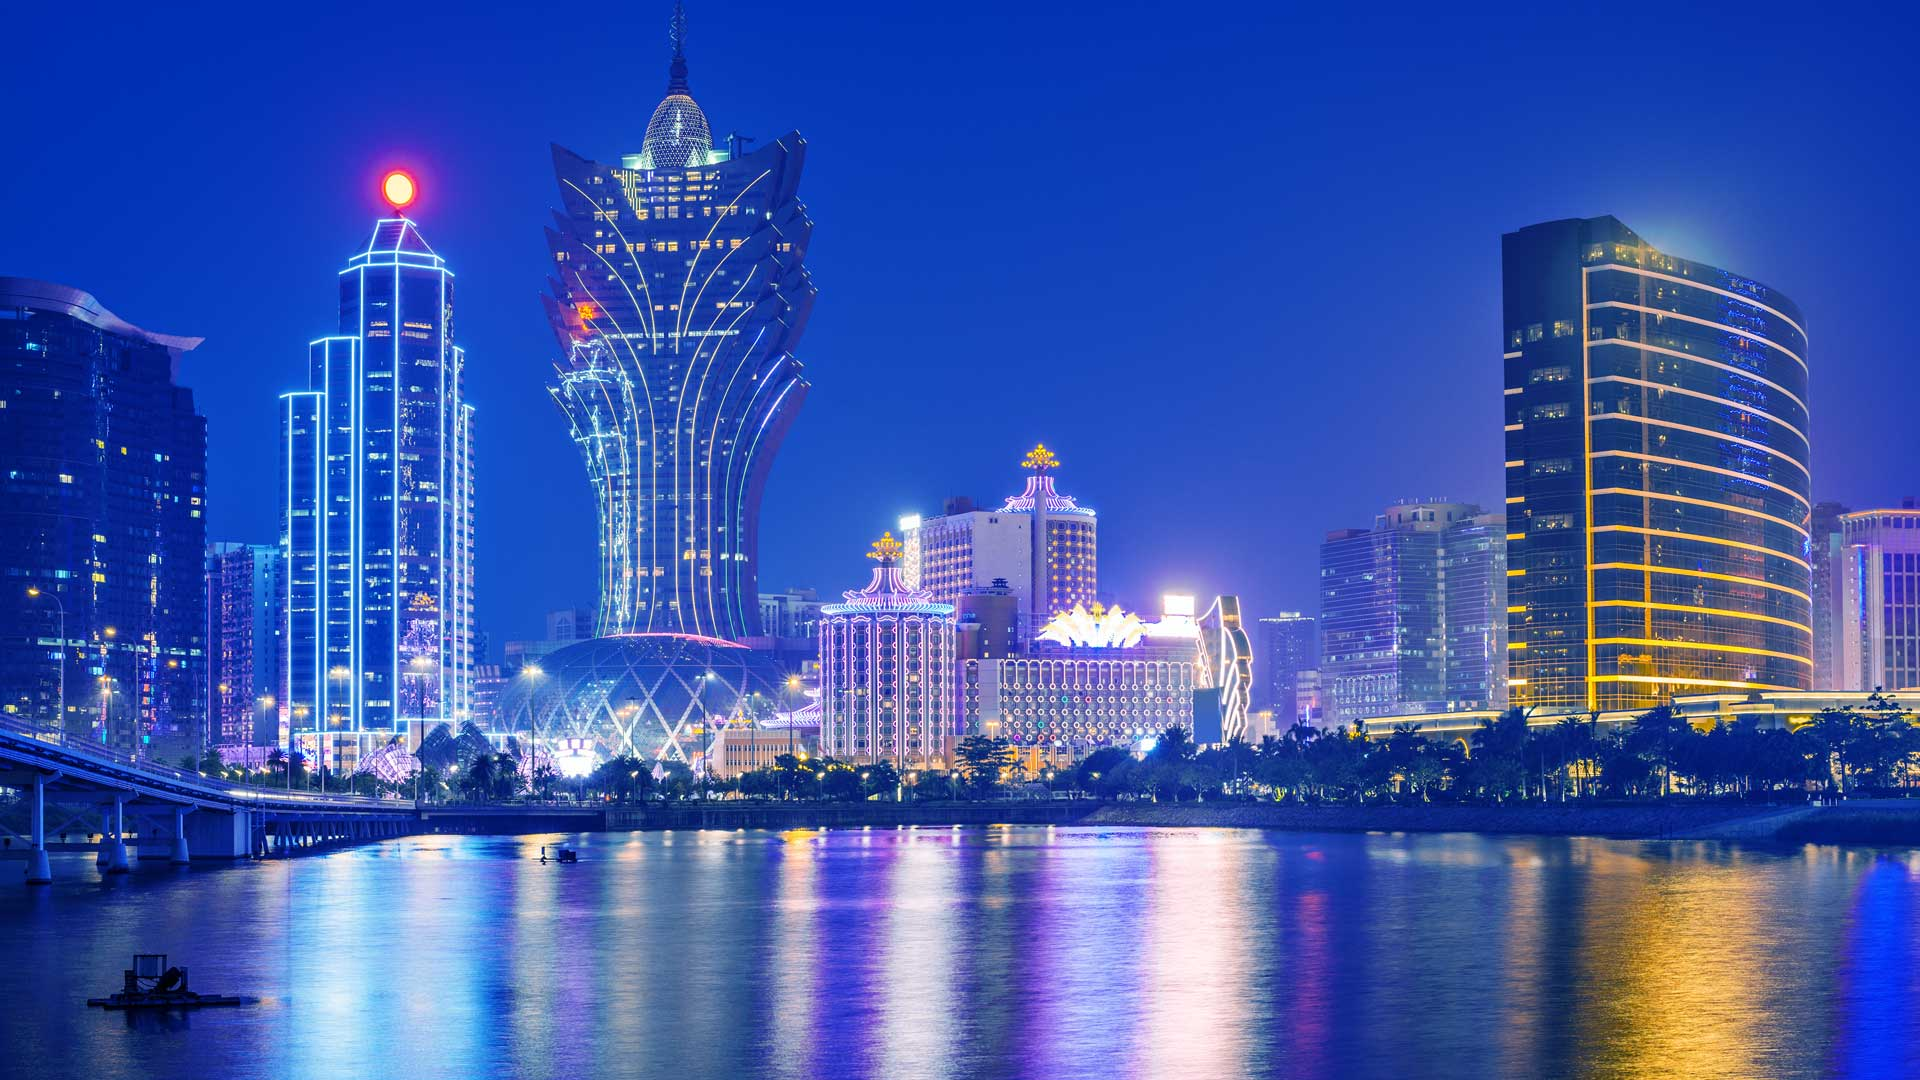 The lit up skyline of Macau